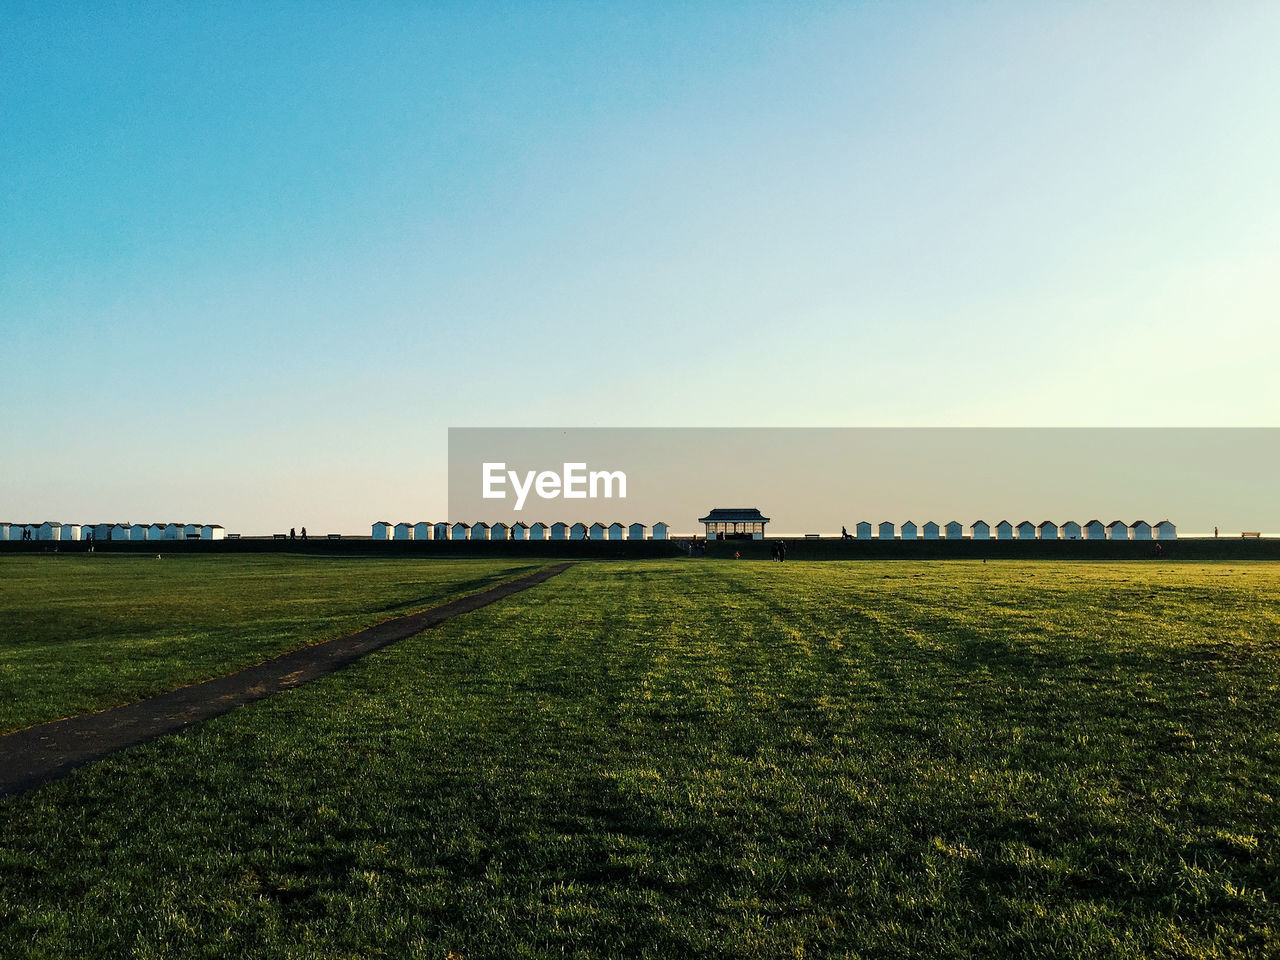 sky, field, land, copy space, landscape, nature, grass, scenics - nature, plant, beauty in nature, environment, tranquil scene, clear sky, agriculture, green color, no people, day, tranquility, outdoors, transportation